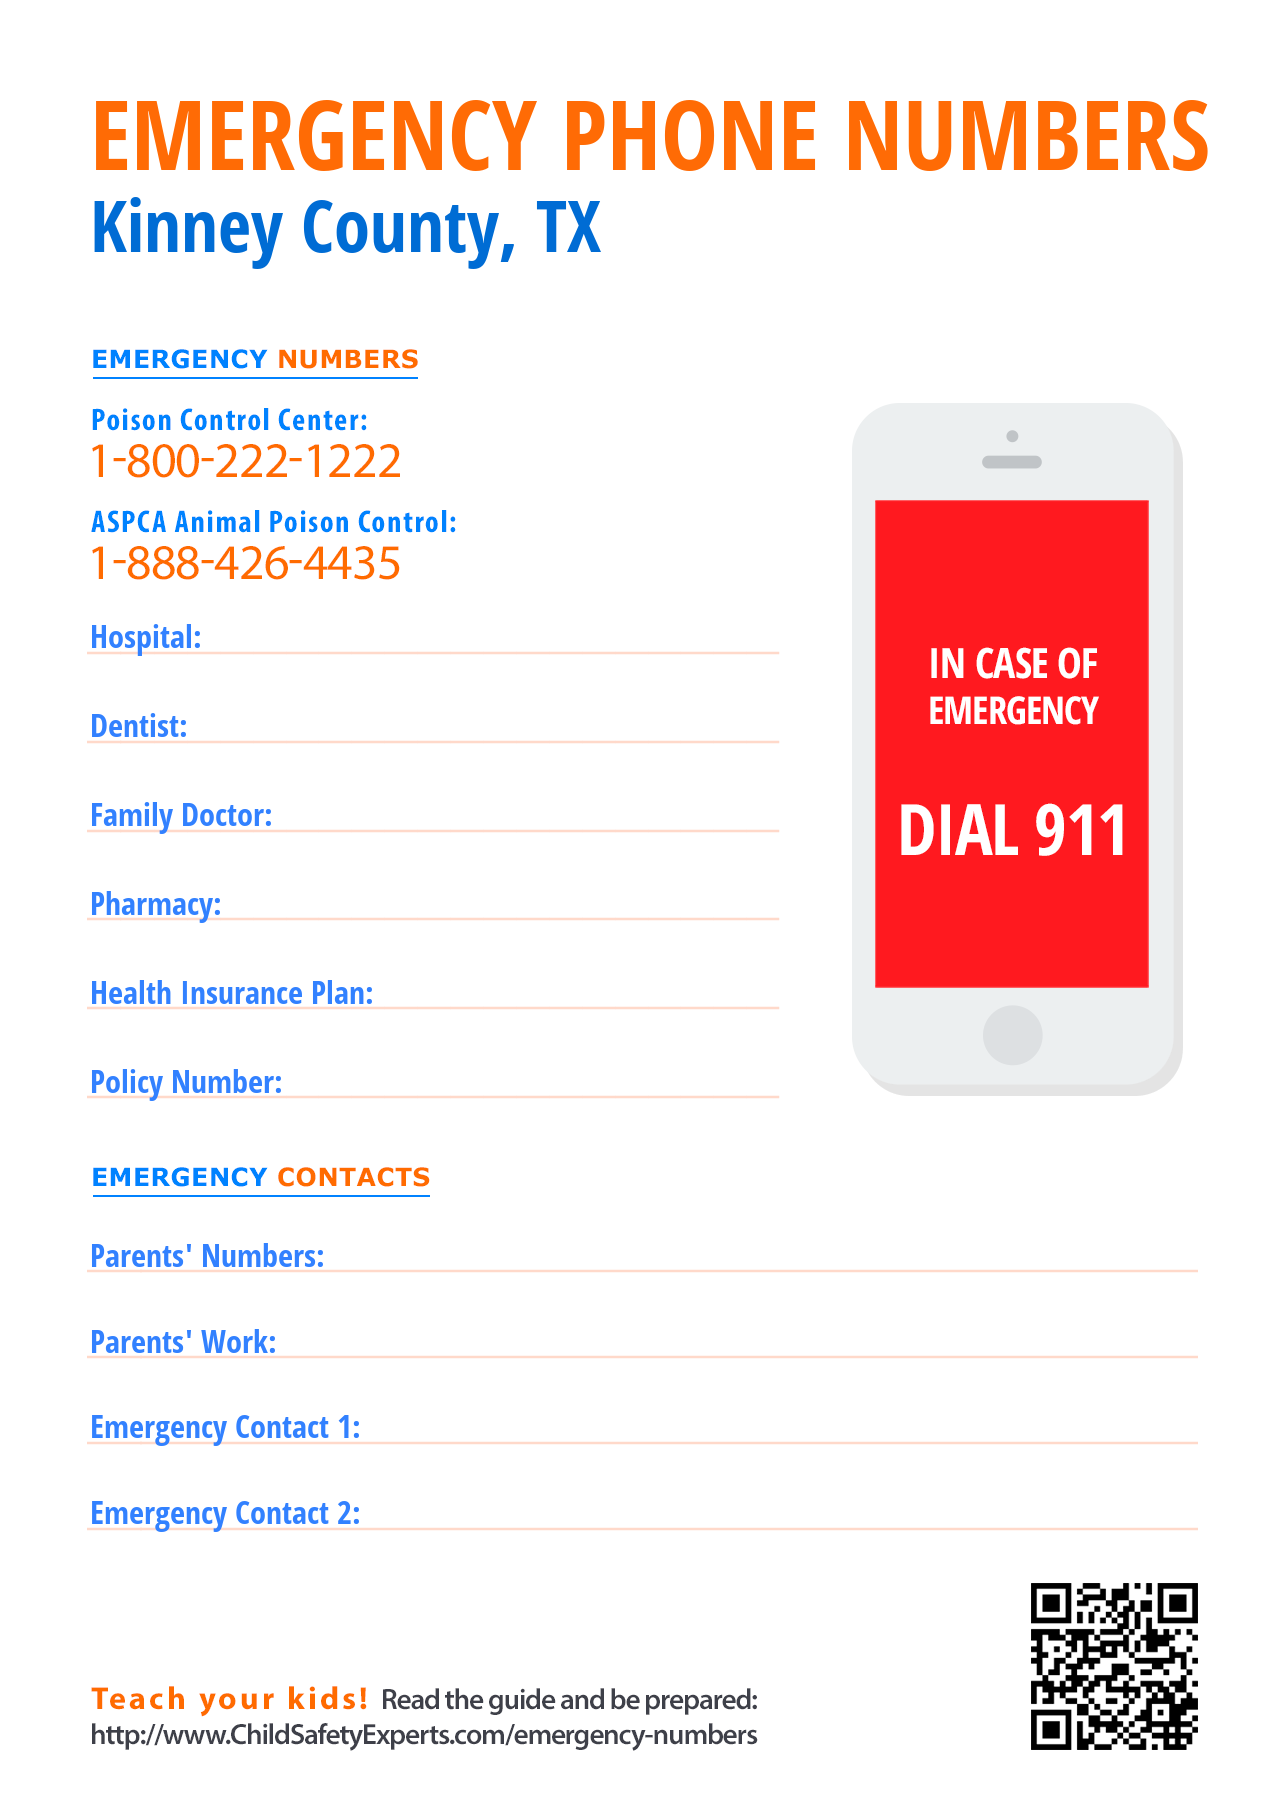 Important emergency phone numbers in Kinney County, Texas